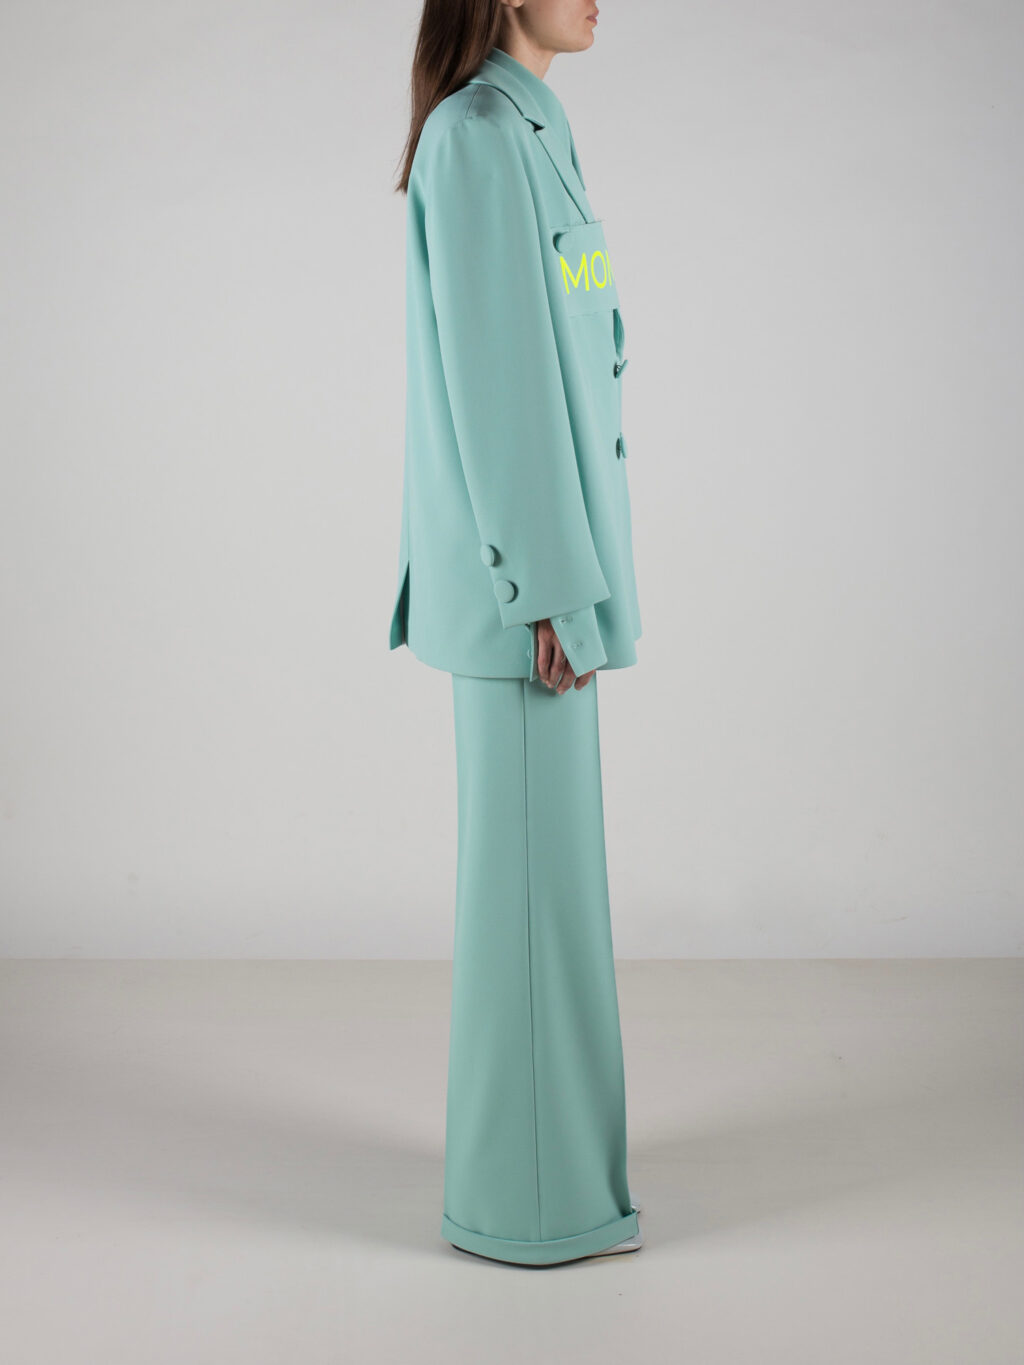 Jacket With Label In Mint